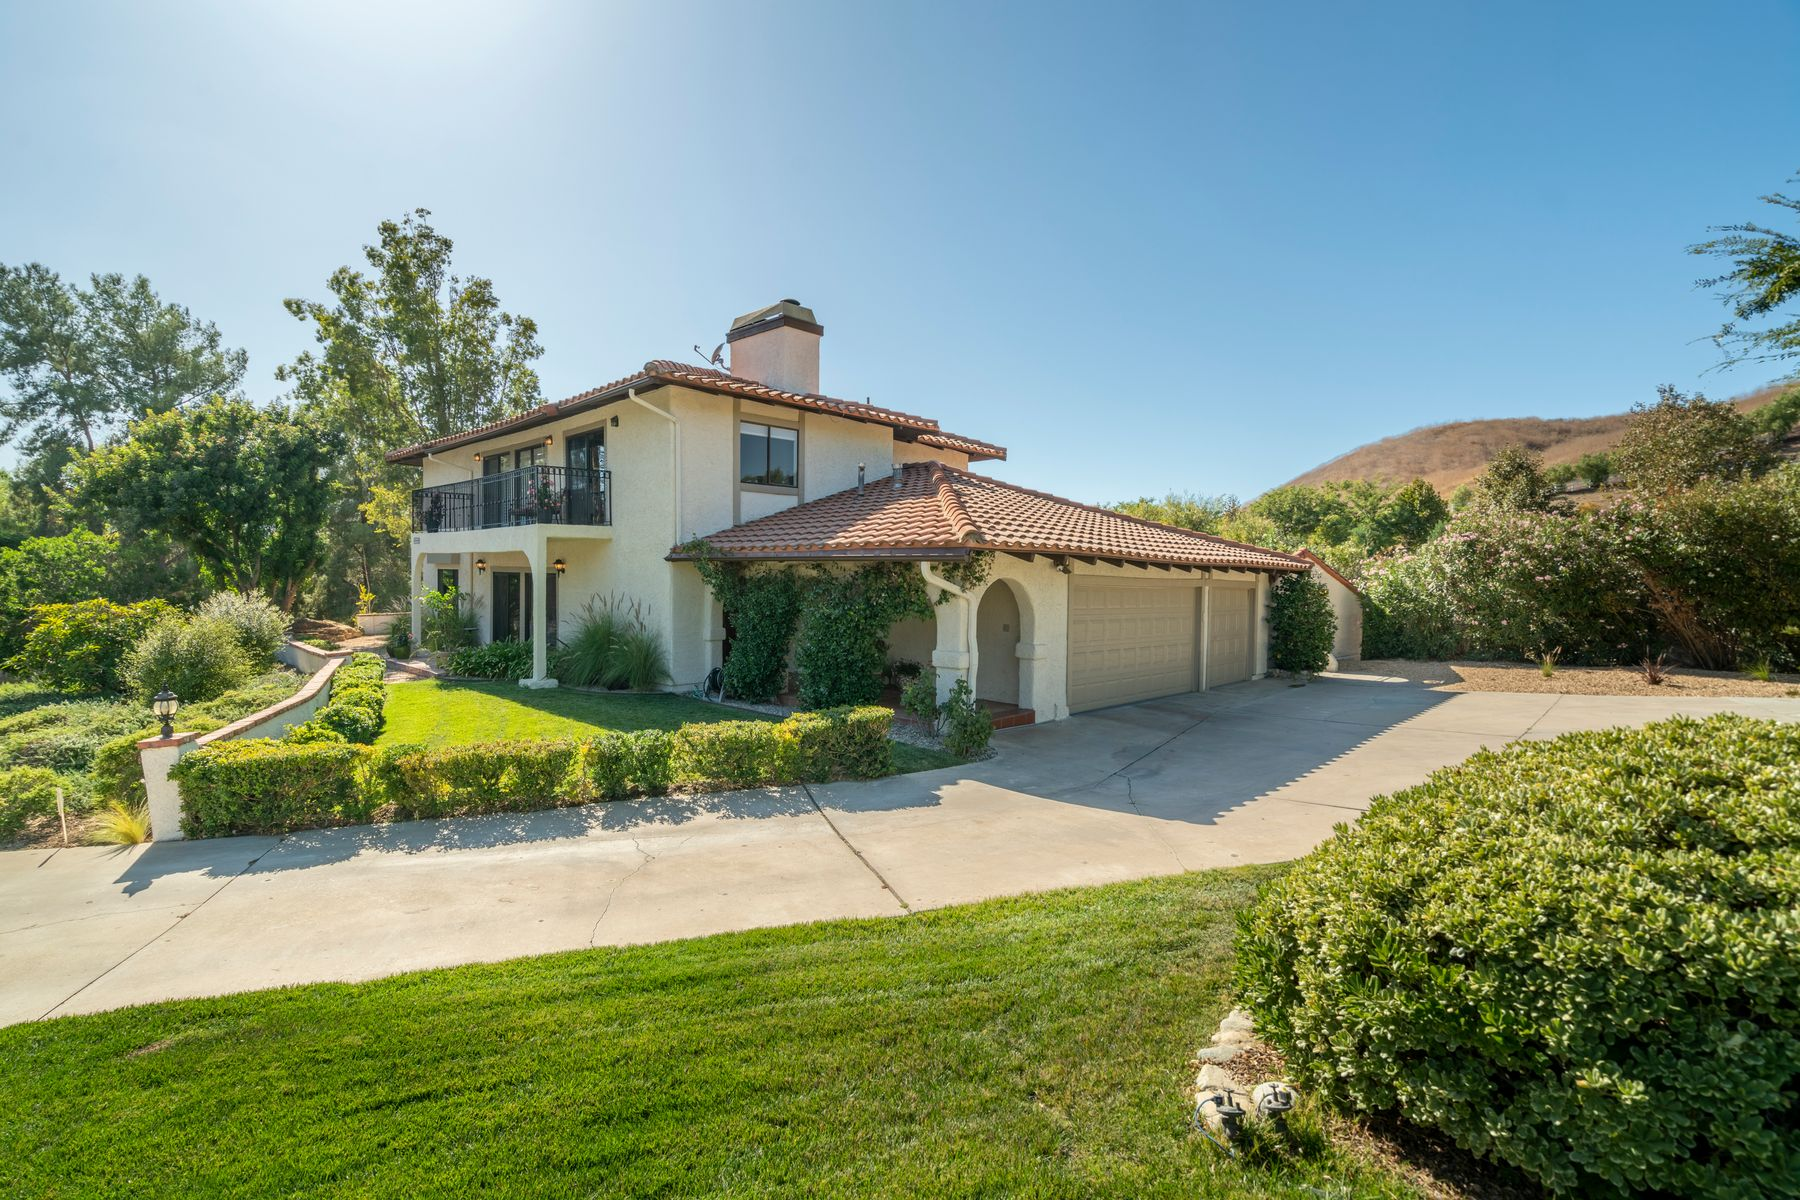 Single Family Homes for Sale at Custom Spanish Hacienda on Private Lot 5703 Toth Place Agoura Hills, California 91301 United States